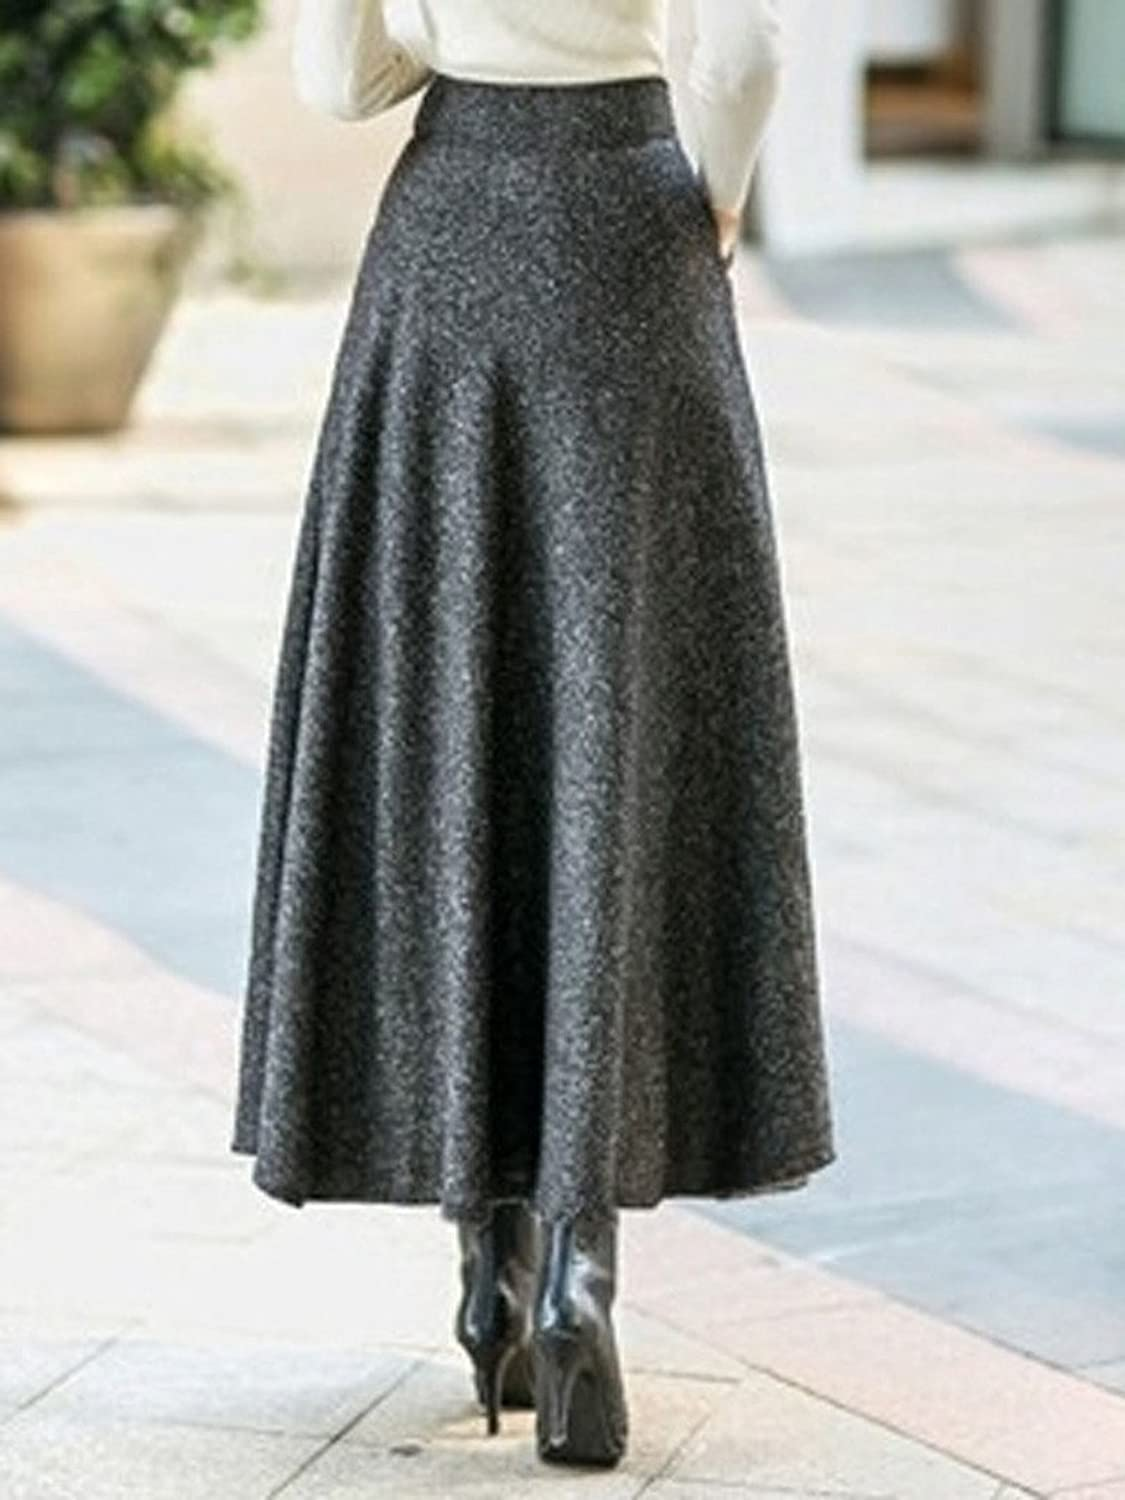 1900-1910s Clothing CR Womens High Waist A-line Flared Long Skirt Winter Fall Midi Skirt $27.99 AT vintagedancer.com